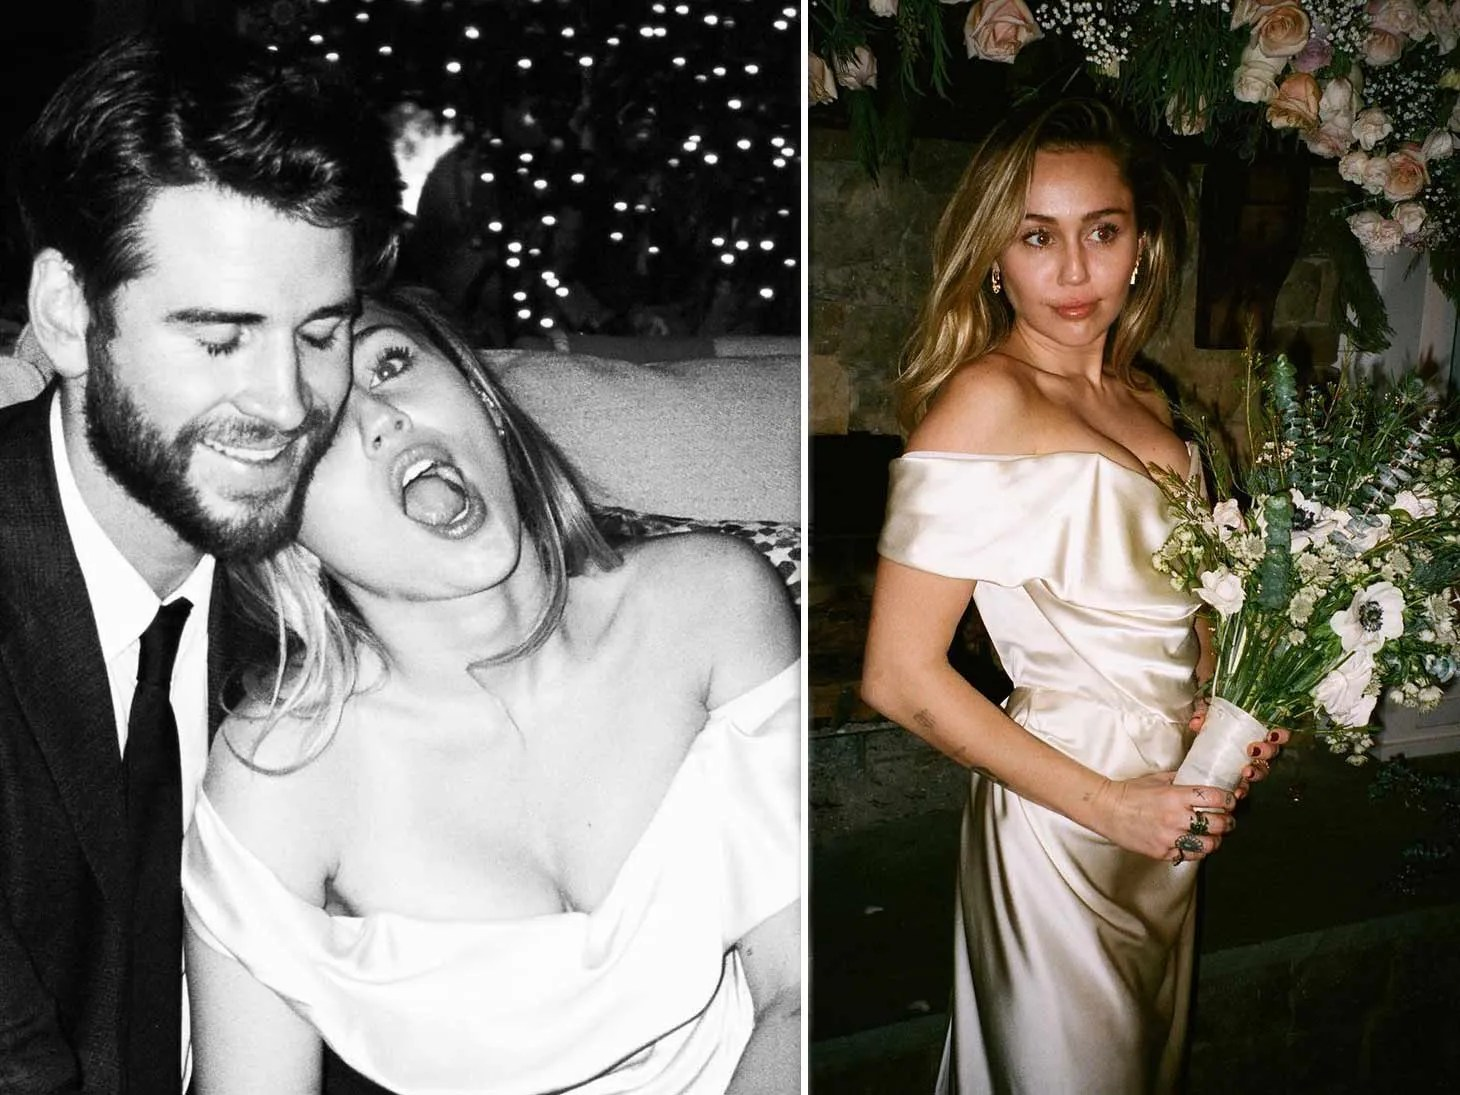 Liam Hemsworth Opens Up About Wedding As Miley Cyrus Shows Never Before Seen Photos From Ceremony